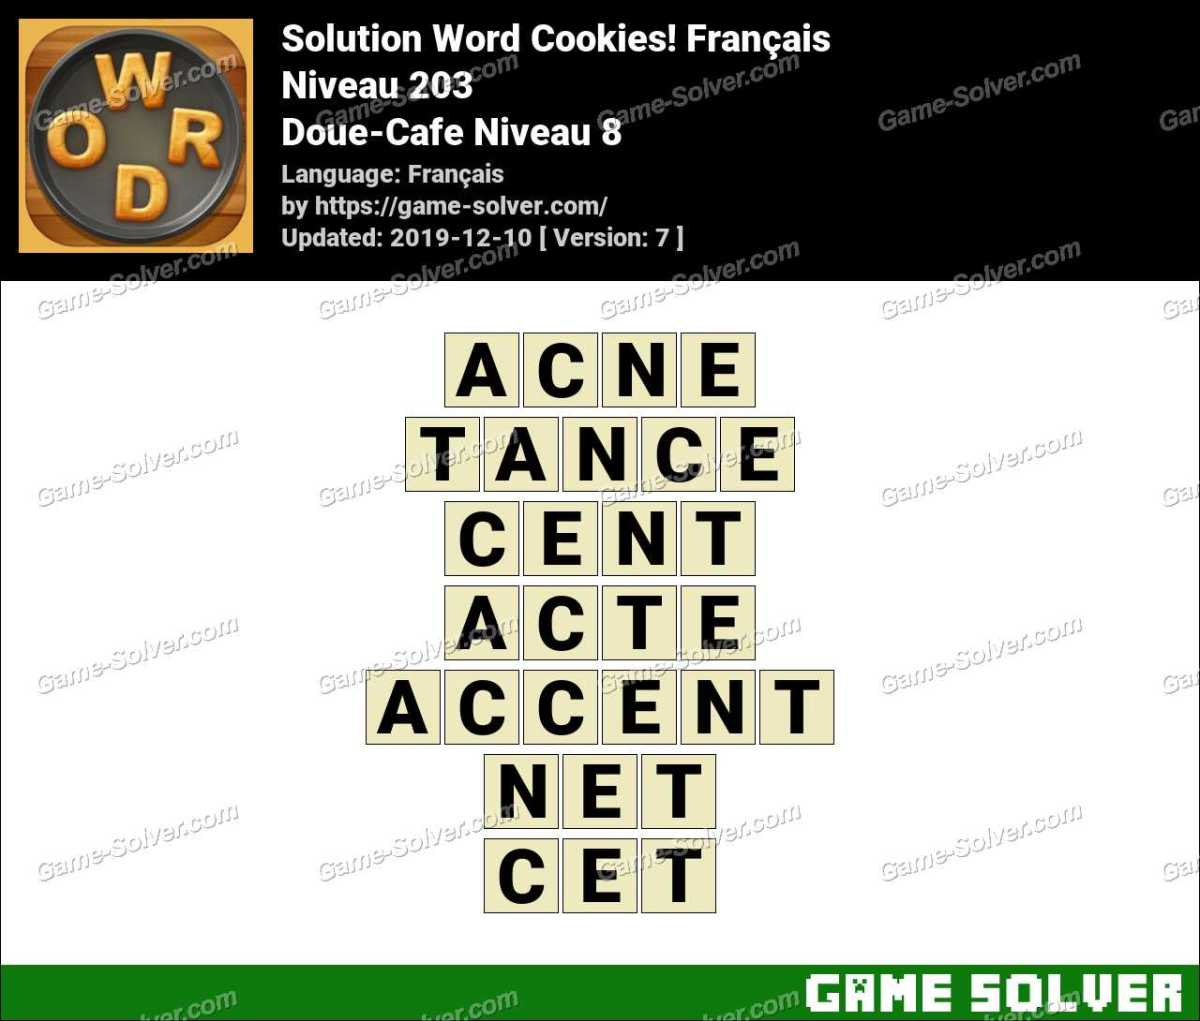 Solution Word Cookies Doue-Cafe Niveau 8